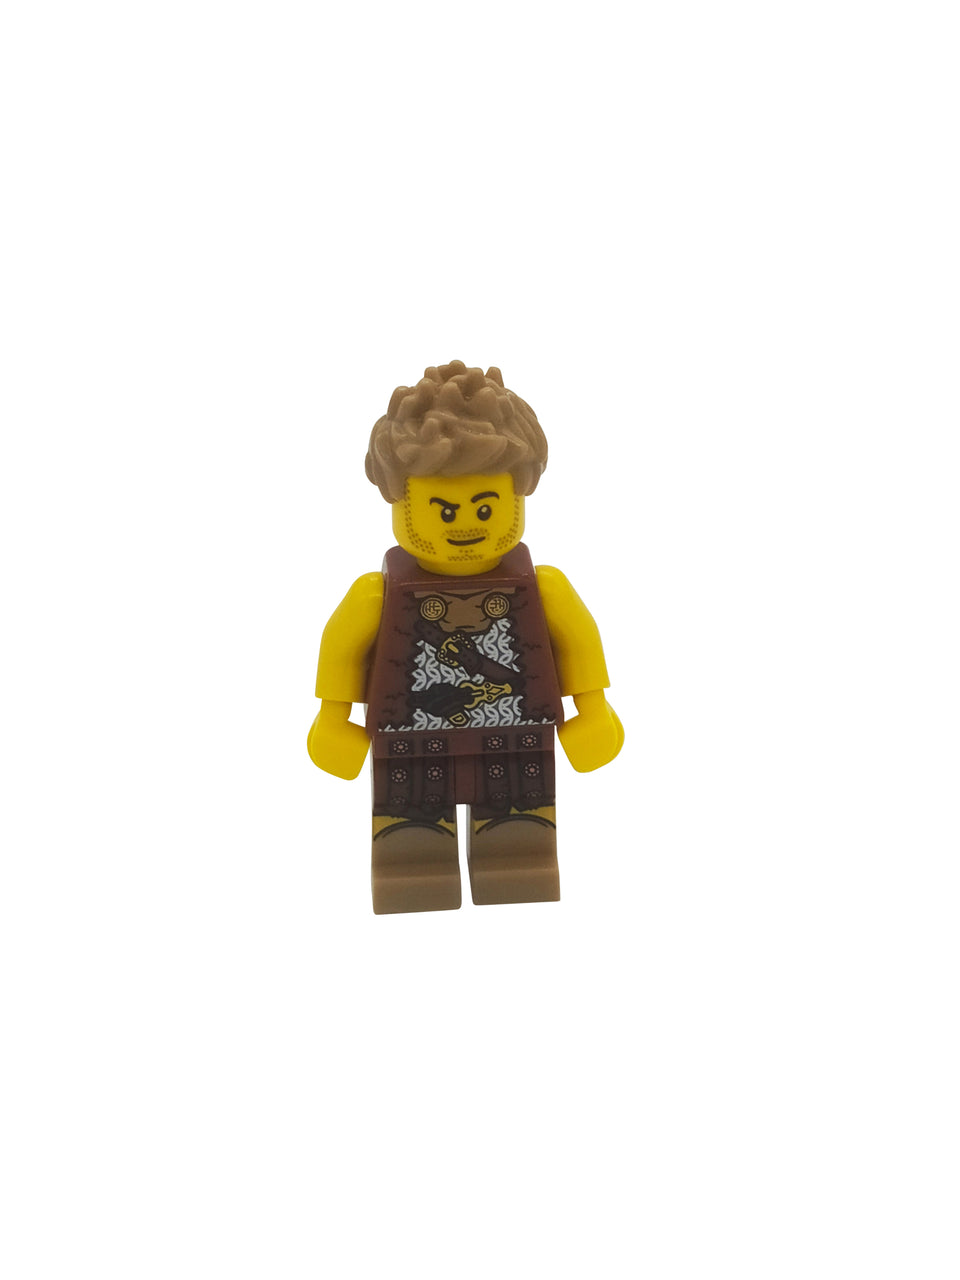 A cave man with crazy hair - Lego